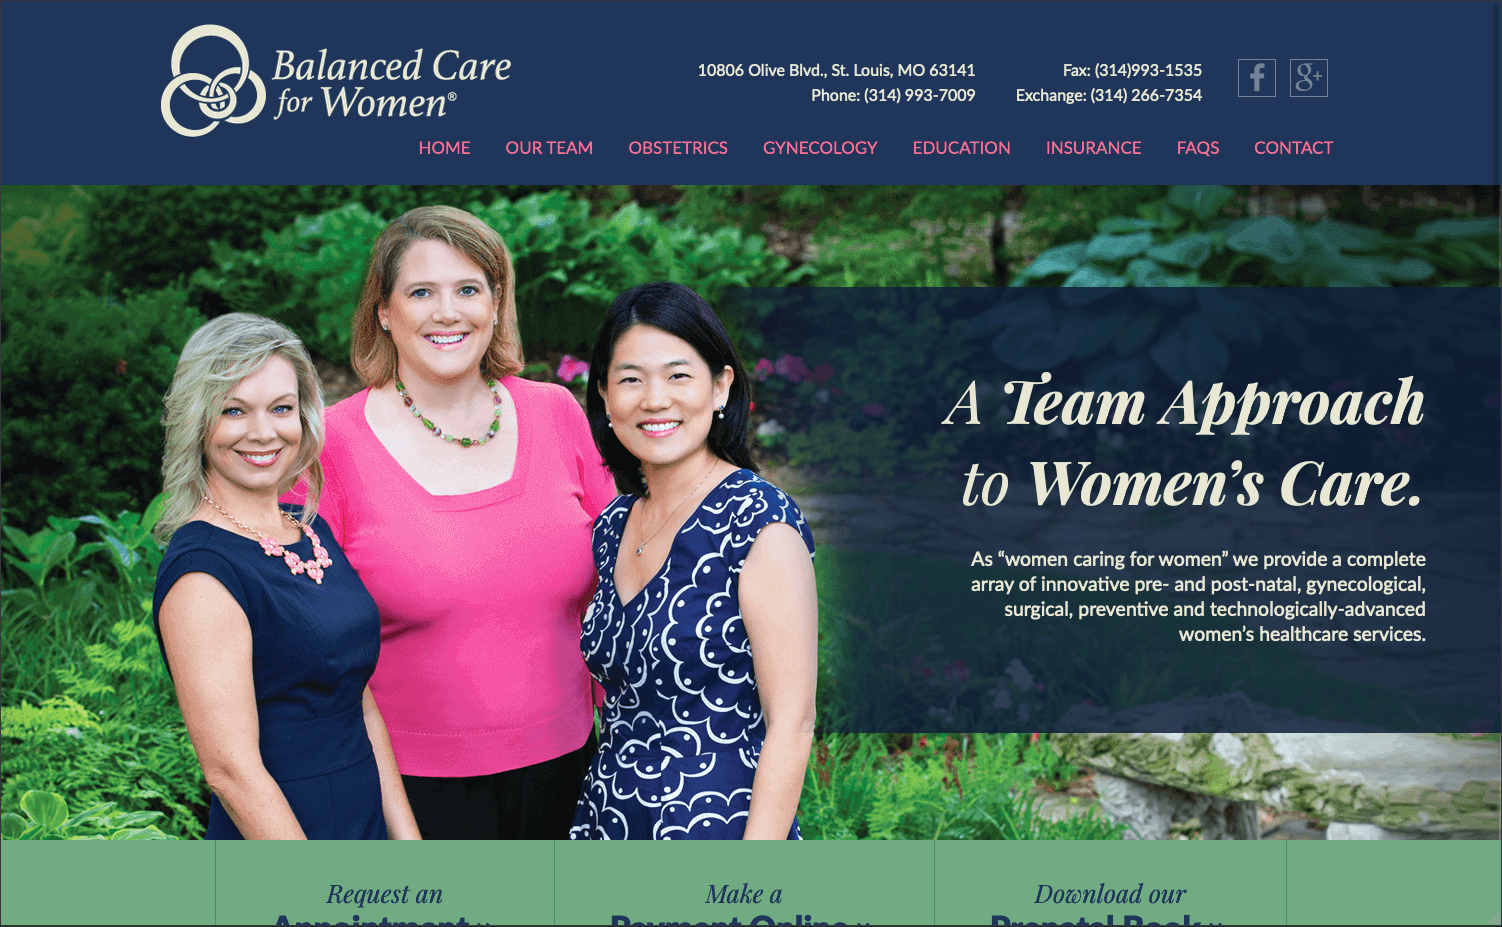 Balanced Care for Women